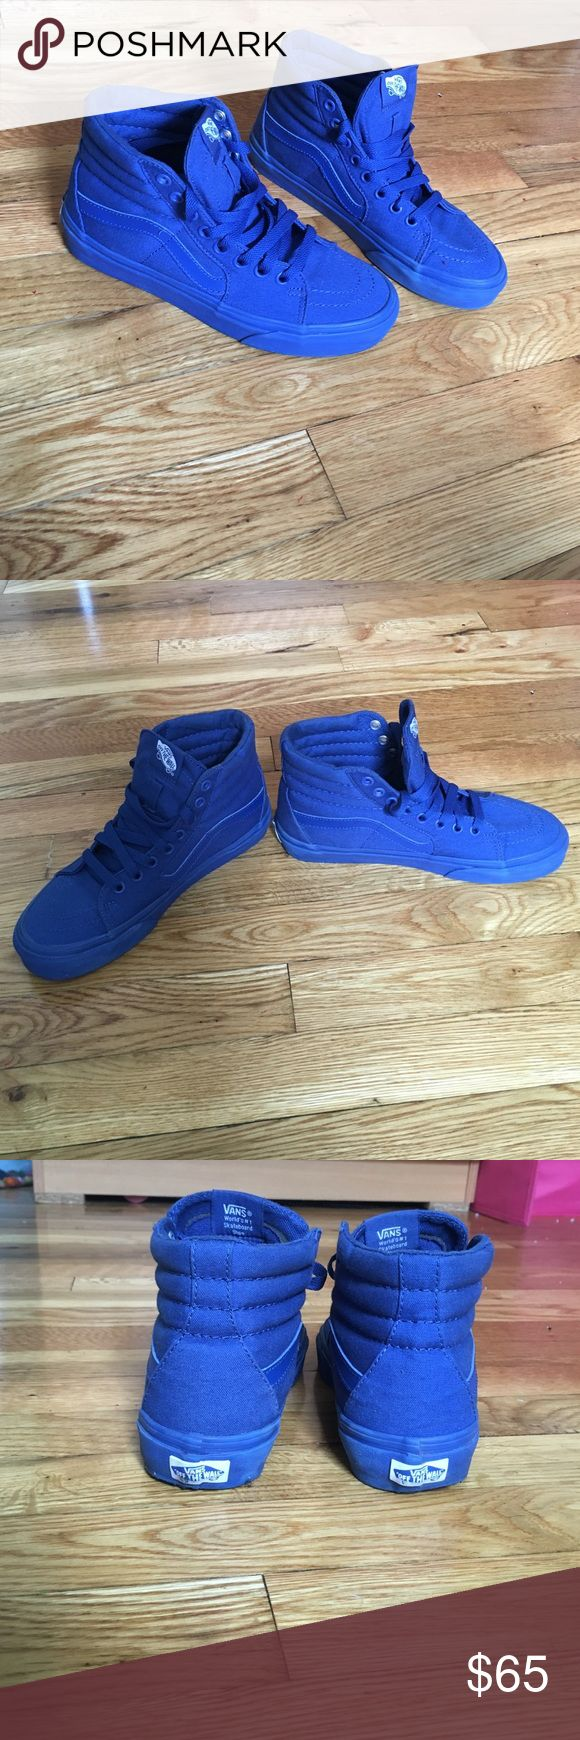 Vans Sk8 Hi skate shoe , true blue limited edition Royal blue high top sneaker PRICE MARKDOWN Vans Shoes Sneakers